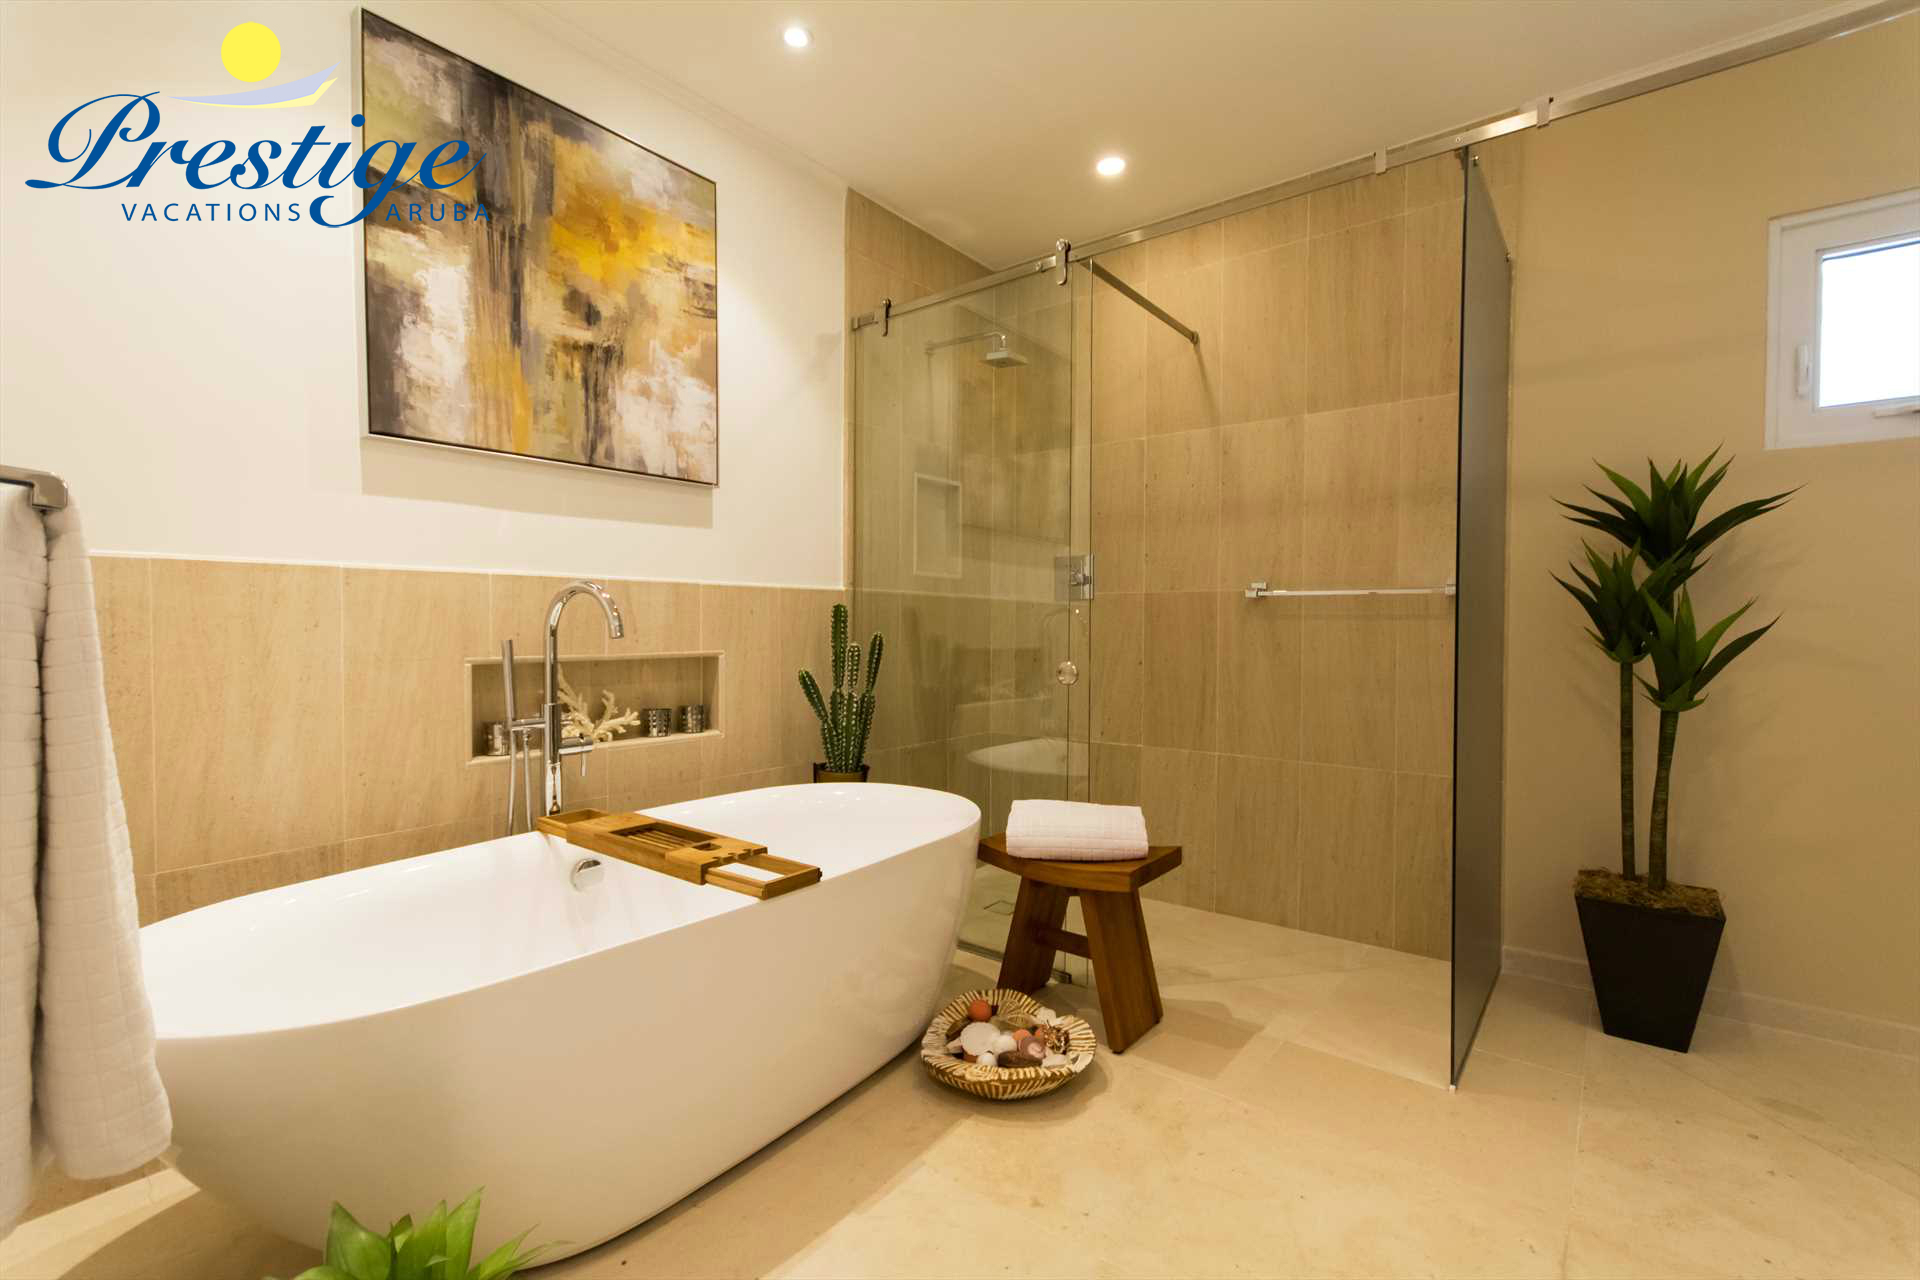 A glass-enclosed shower area plus a free-standing bathtub to soak and calm down during your stay